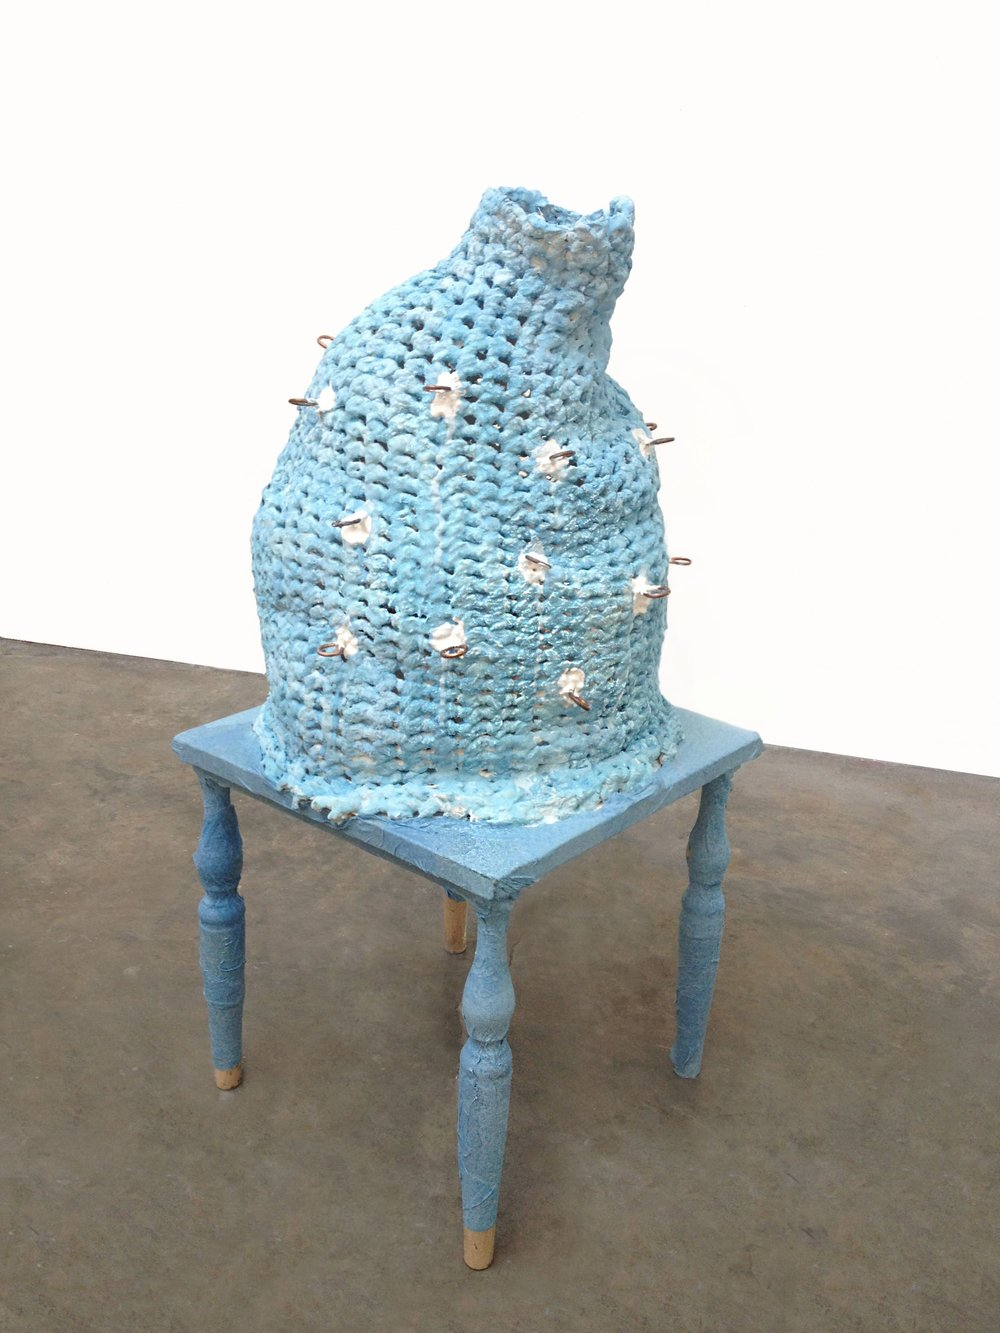 Blue Pearlinious,   2013  Cast hydrocal, concrete, pigment Dimensions variable